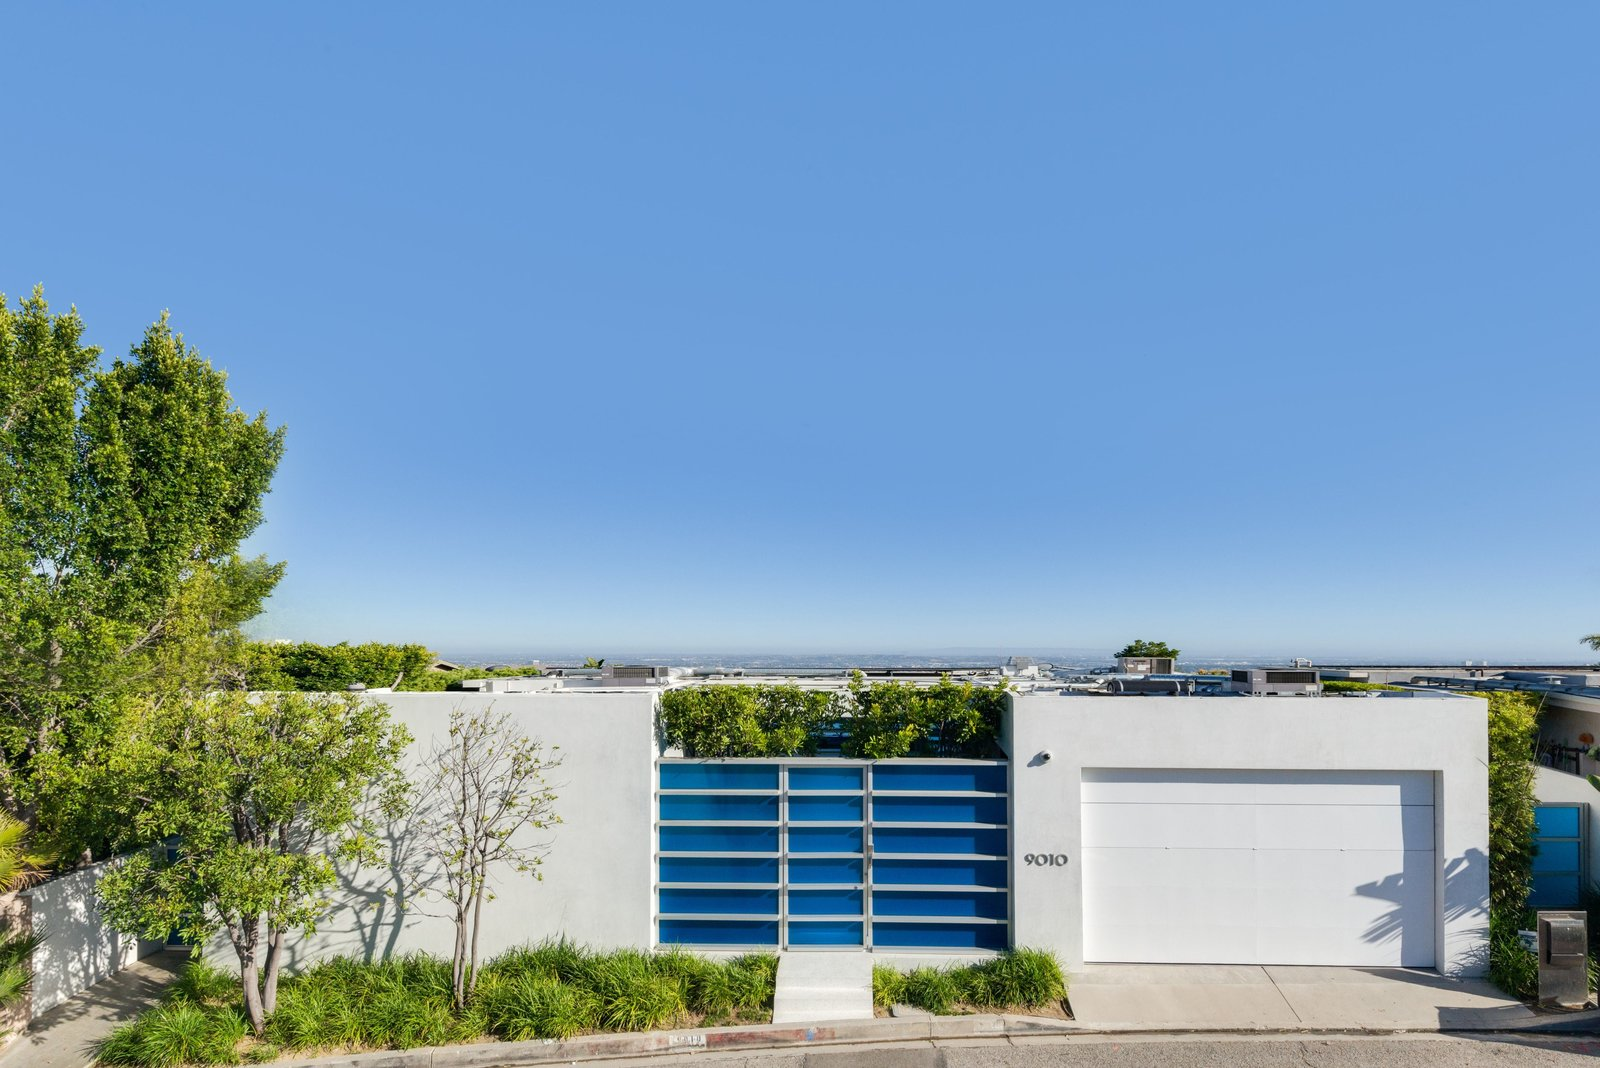 Tagged: Outdoor, Trees, Shrubs, Front Yard, and Metal Fences, Wall.  Hopen Place by Dwell from 'Friends' Star Matthew Perry's Midcentury Stunner in the Hollywood Hills Is For Sale